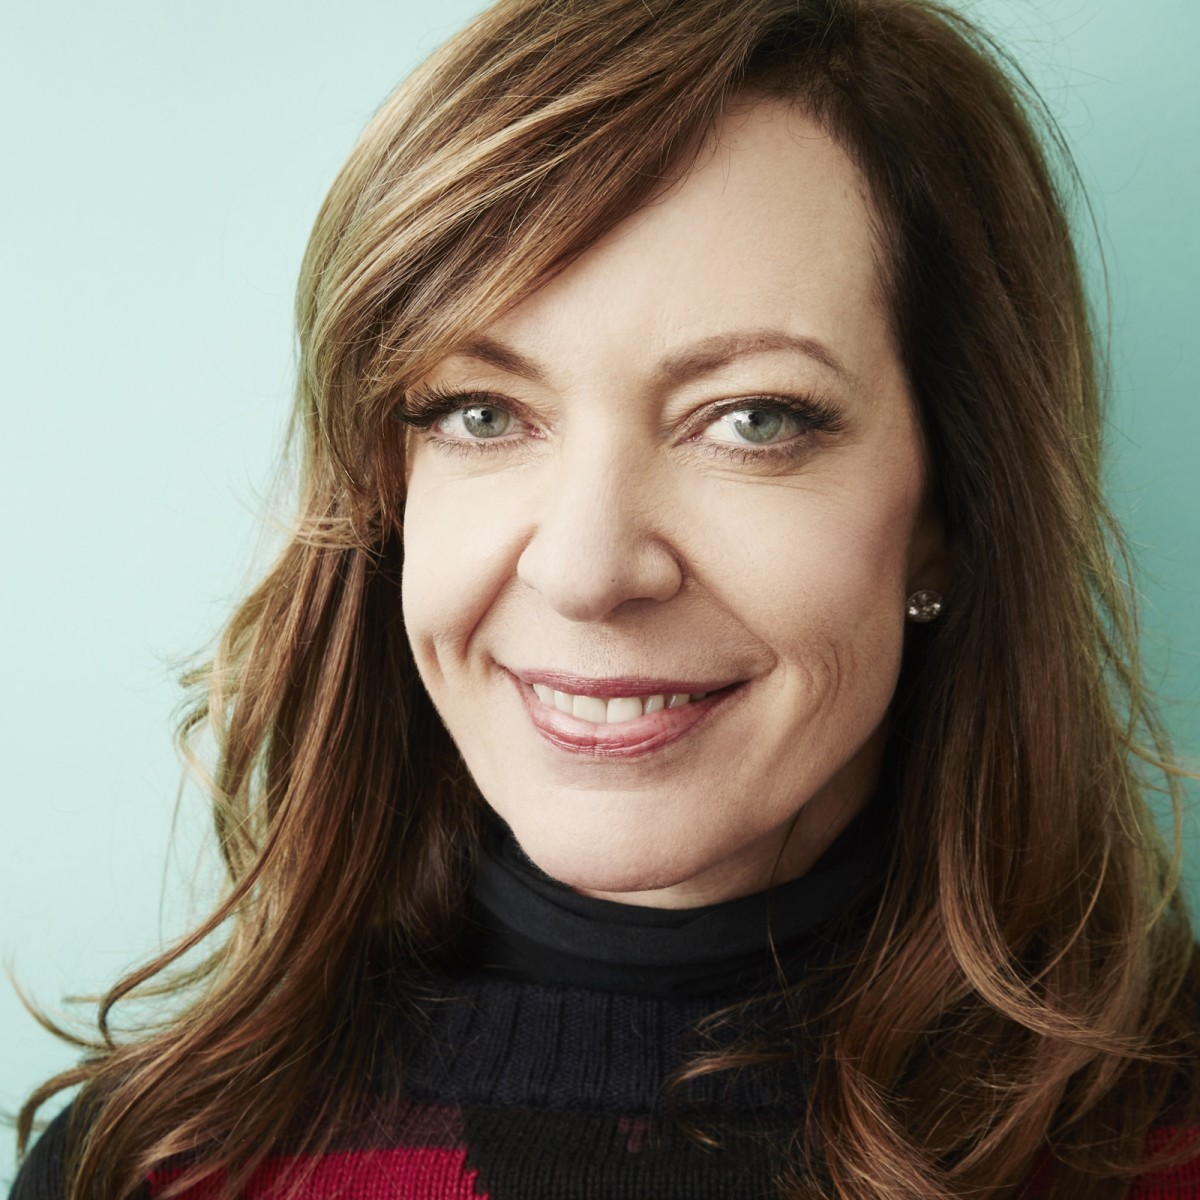 Allison Janney born November 19, 1959 (age 58)